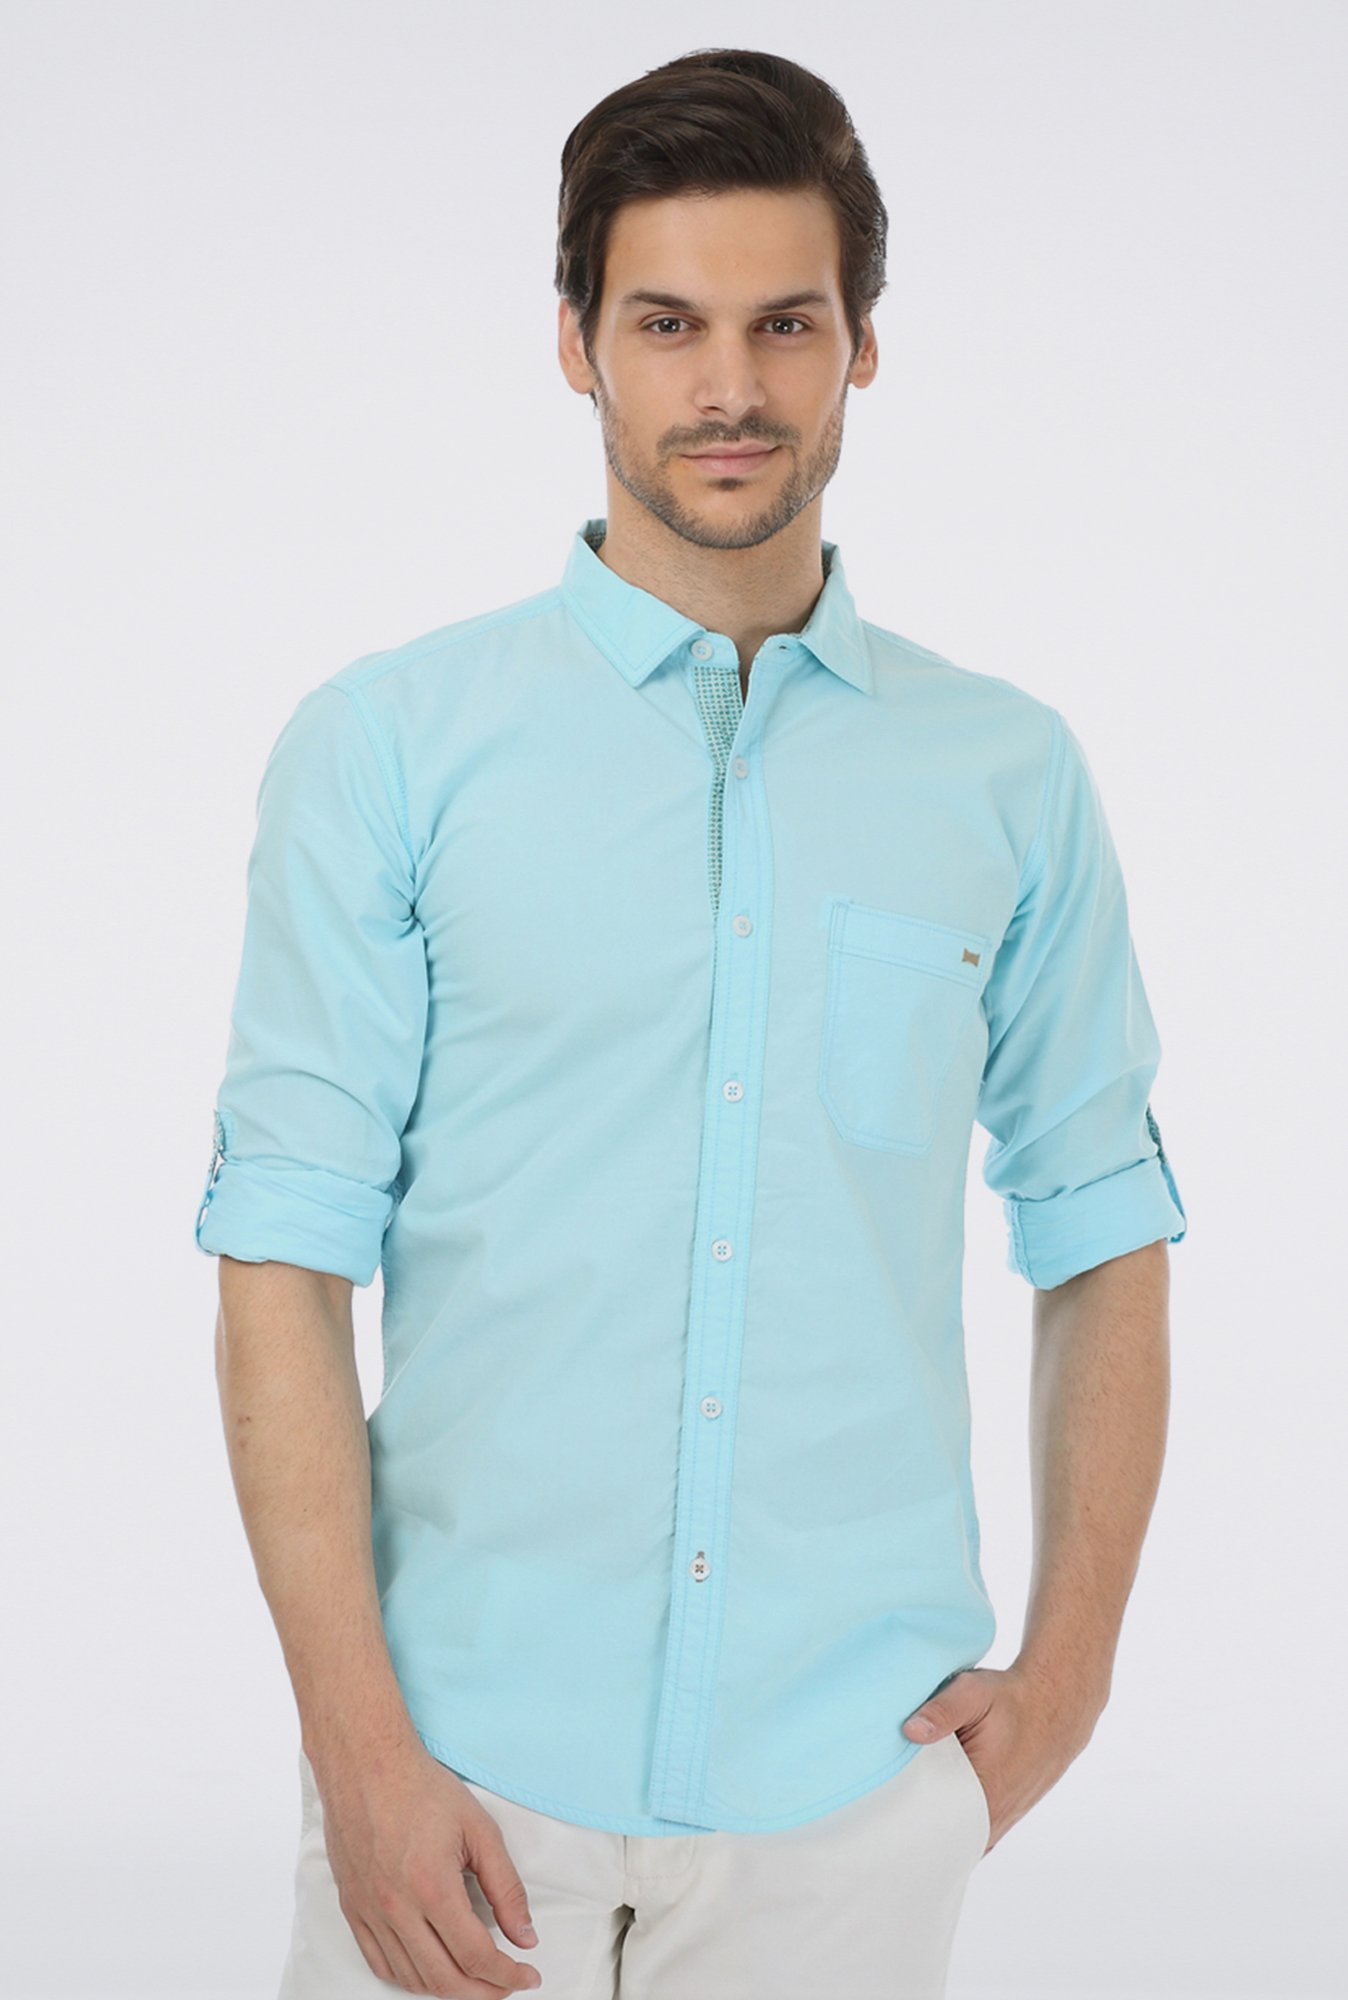 Basics Aqua Cotton Casual Shirt